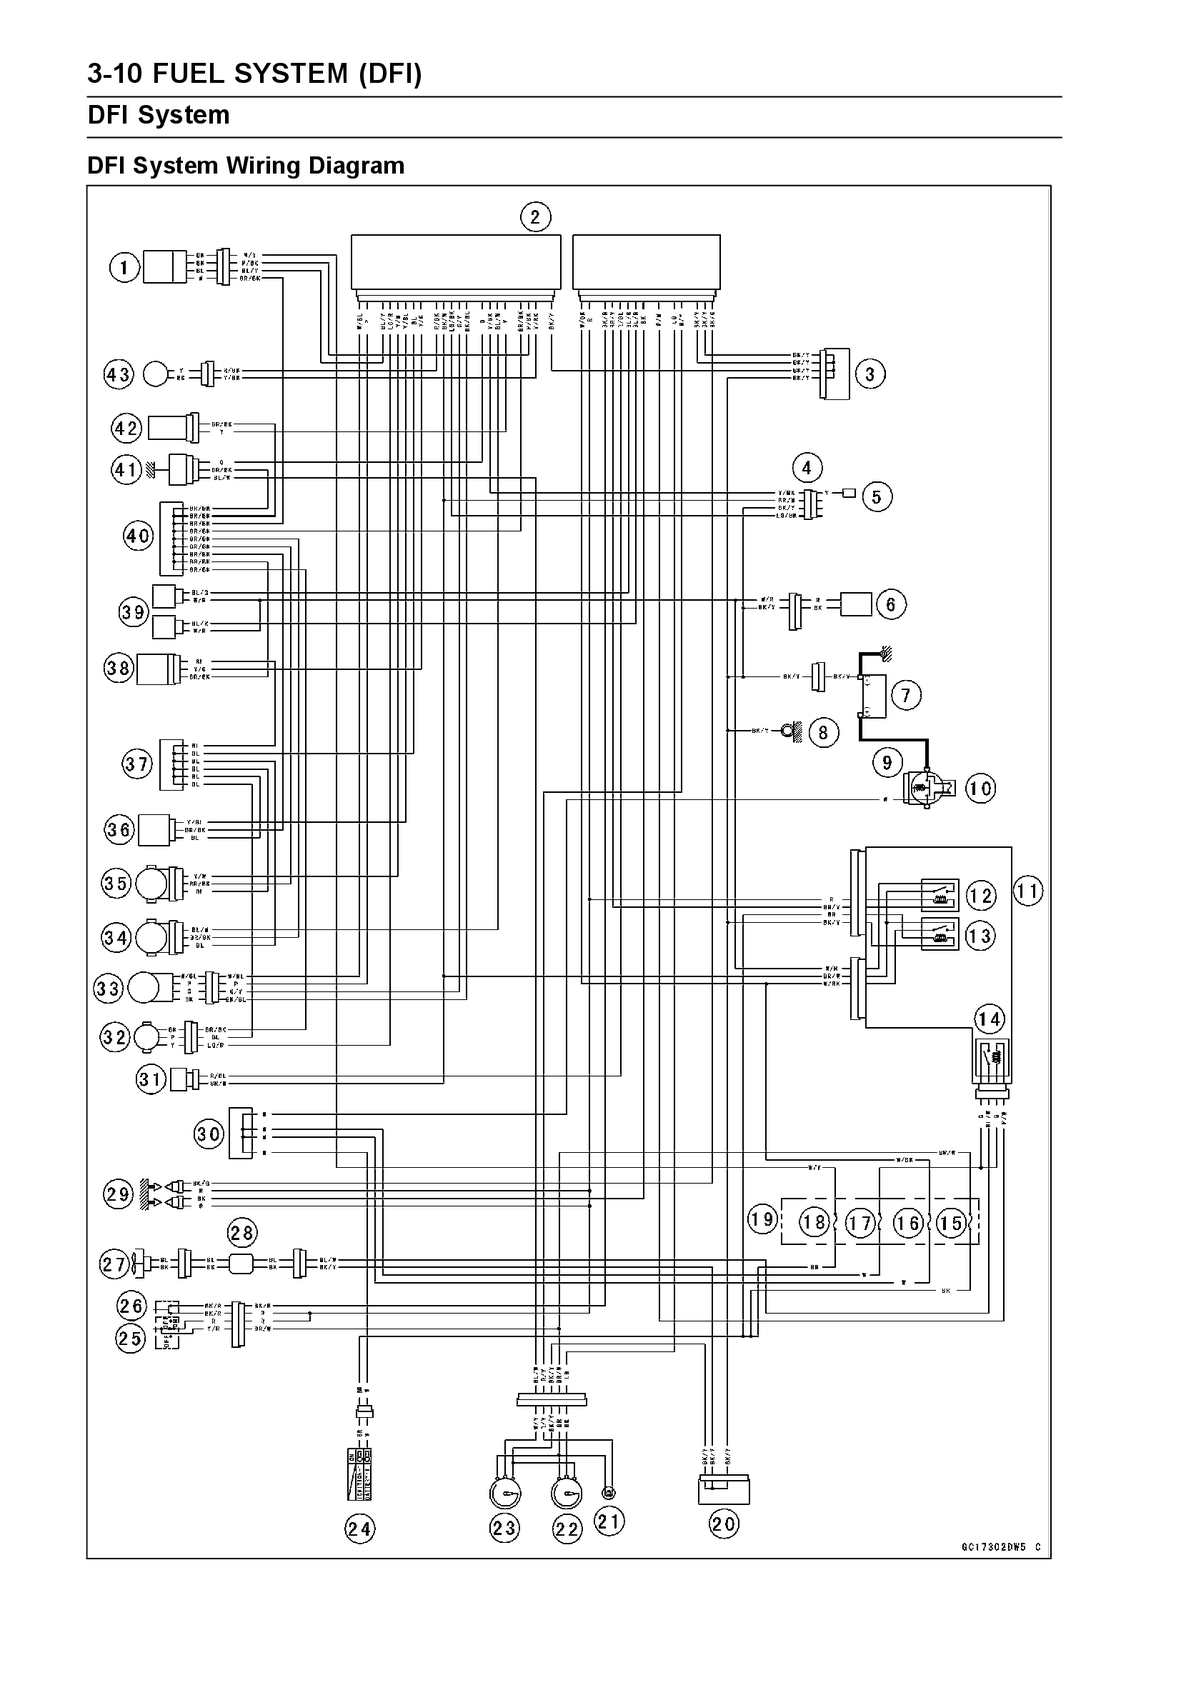 hight resolution of calam o kawasaki ninja 250r fuel system dfi wiring diagram pdf 2008 ninja 250r wiring